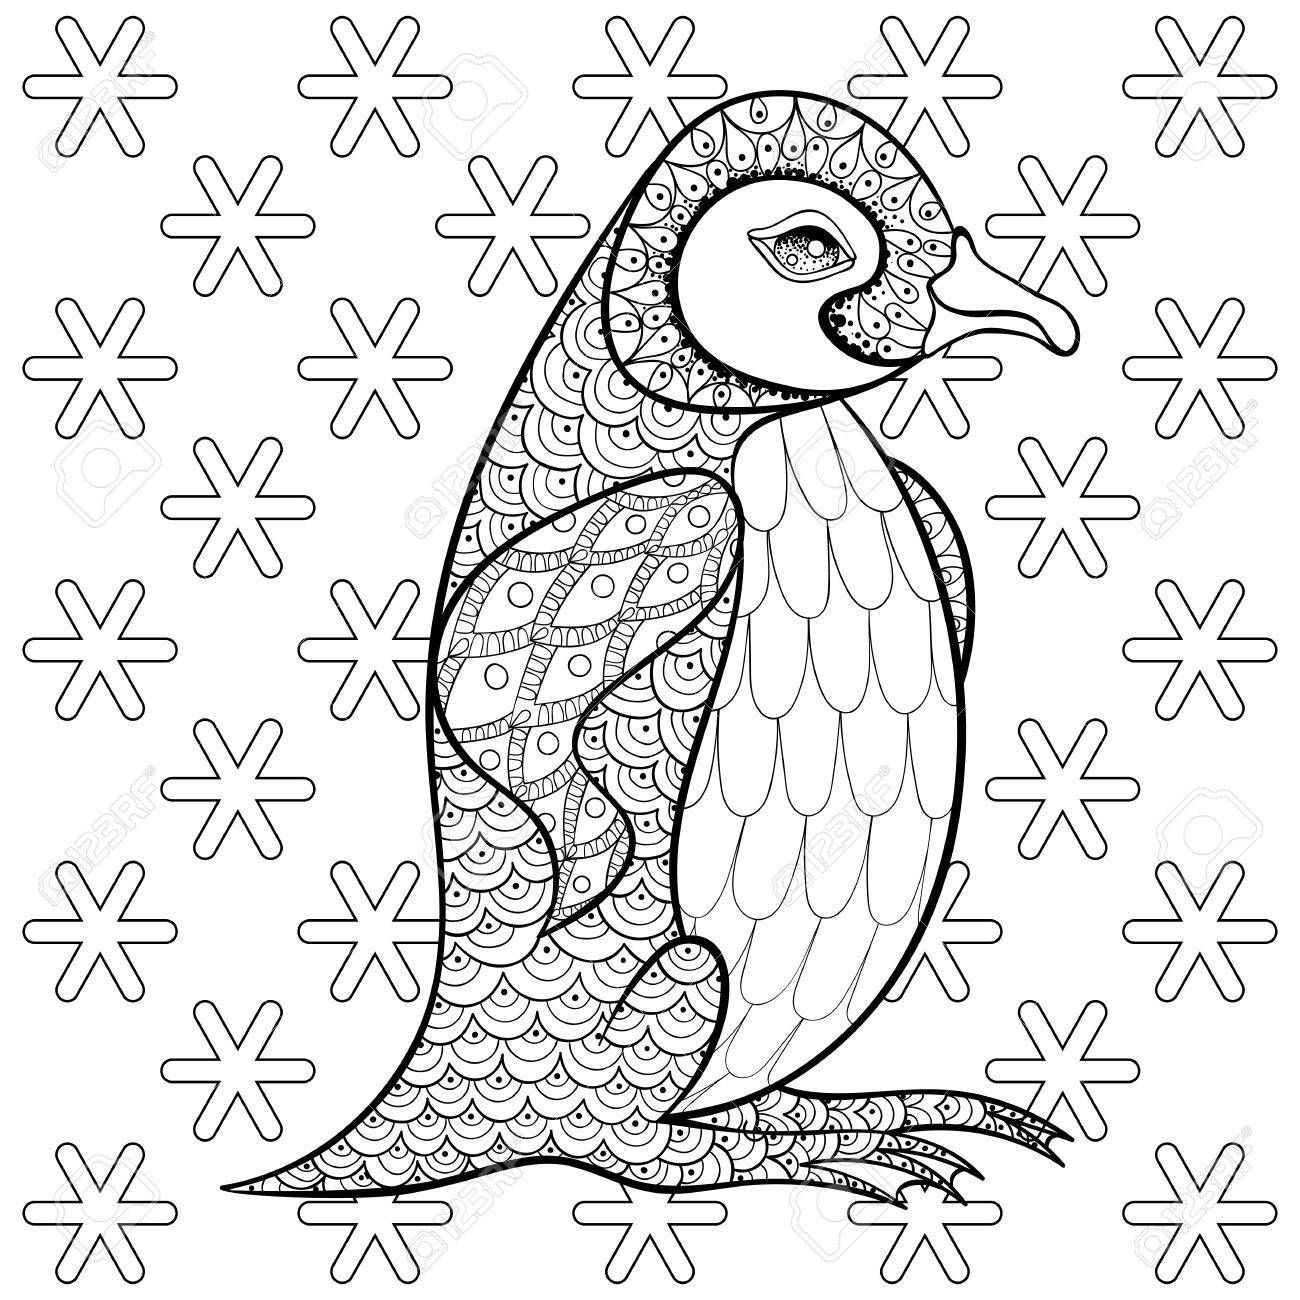 Coloring Pages With King Penguin Among Snowflakes Zentangle